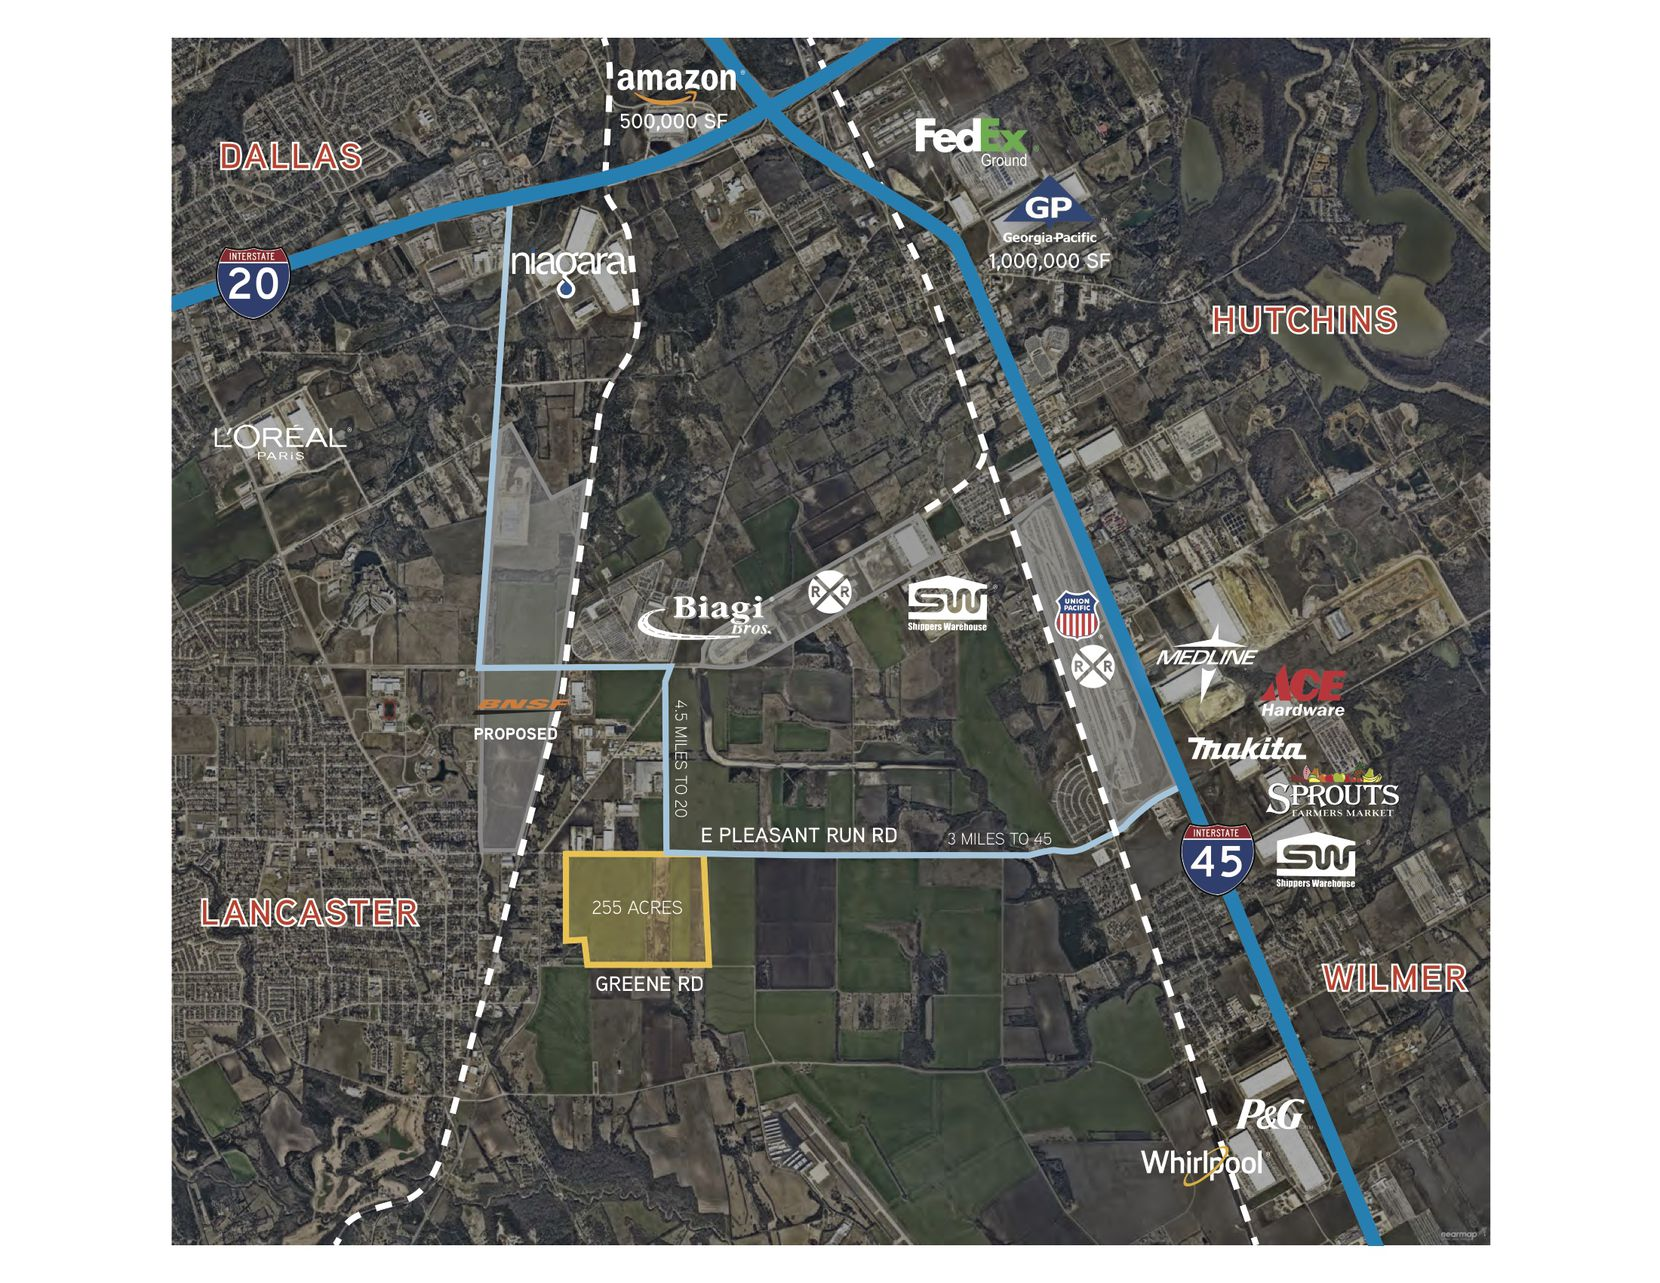 The land developer Mike Rader purchased is on Pleasant Run Road west of Interstate 45.